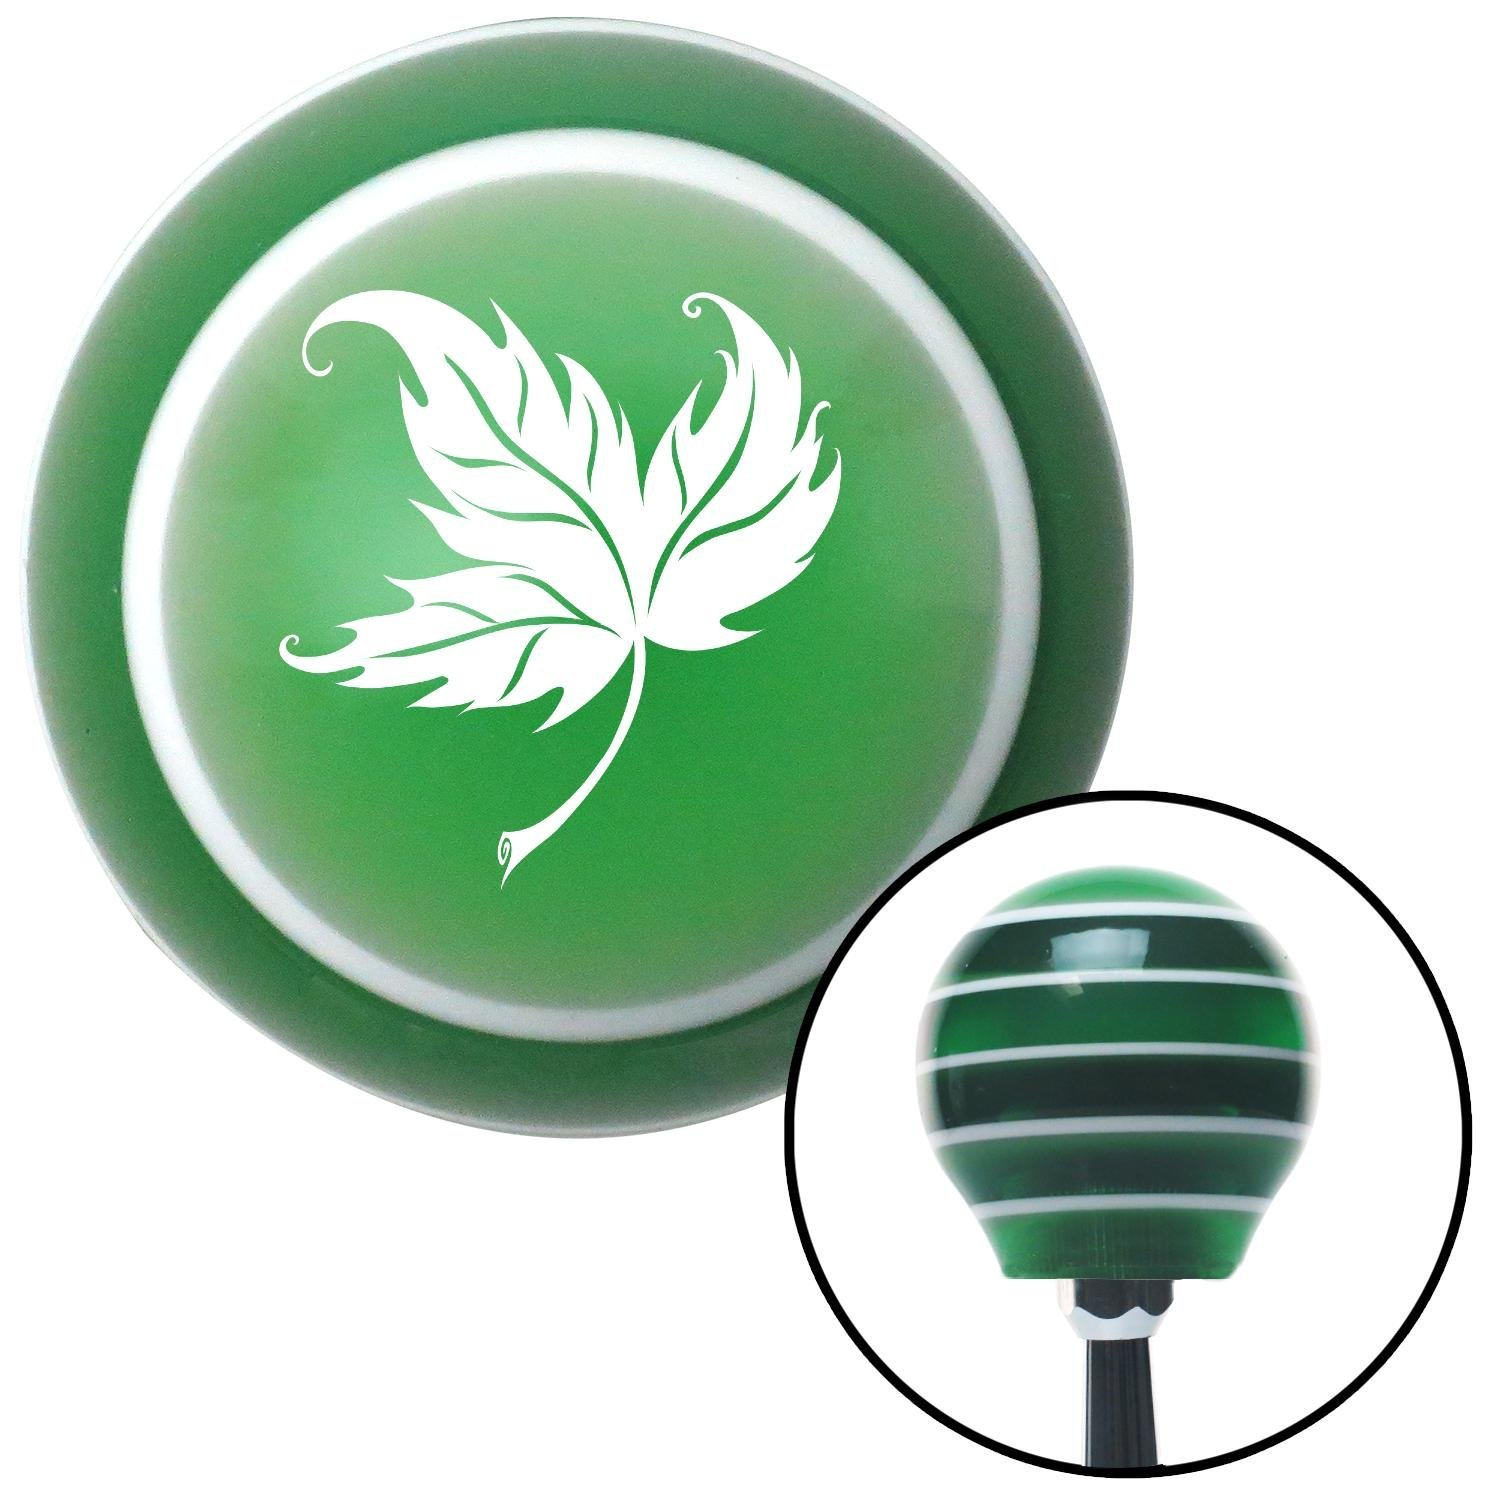 American Shifter 125682 Green Stripe Shift Knob with M16 x 1.5 Insert White Falling Leaf